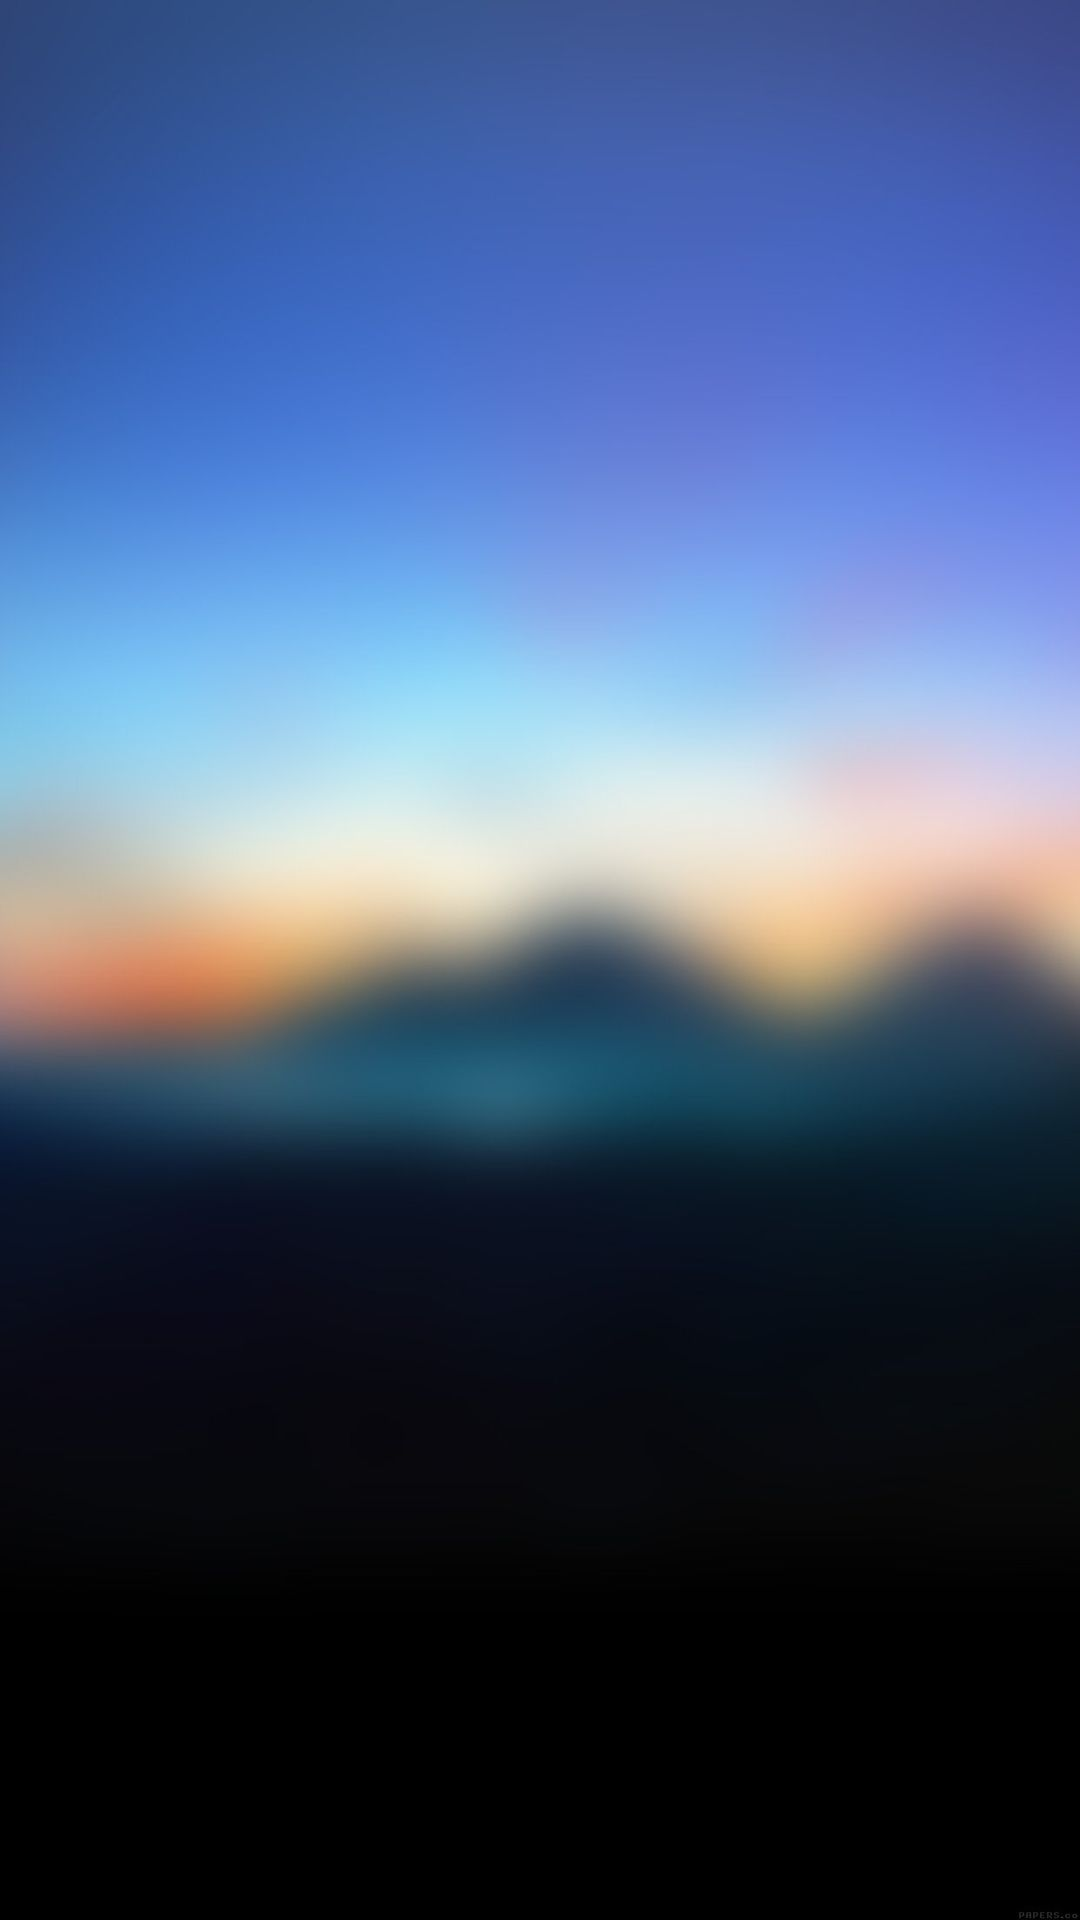 mountain sunrise gradation blur iphone 6 plus wallpaper